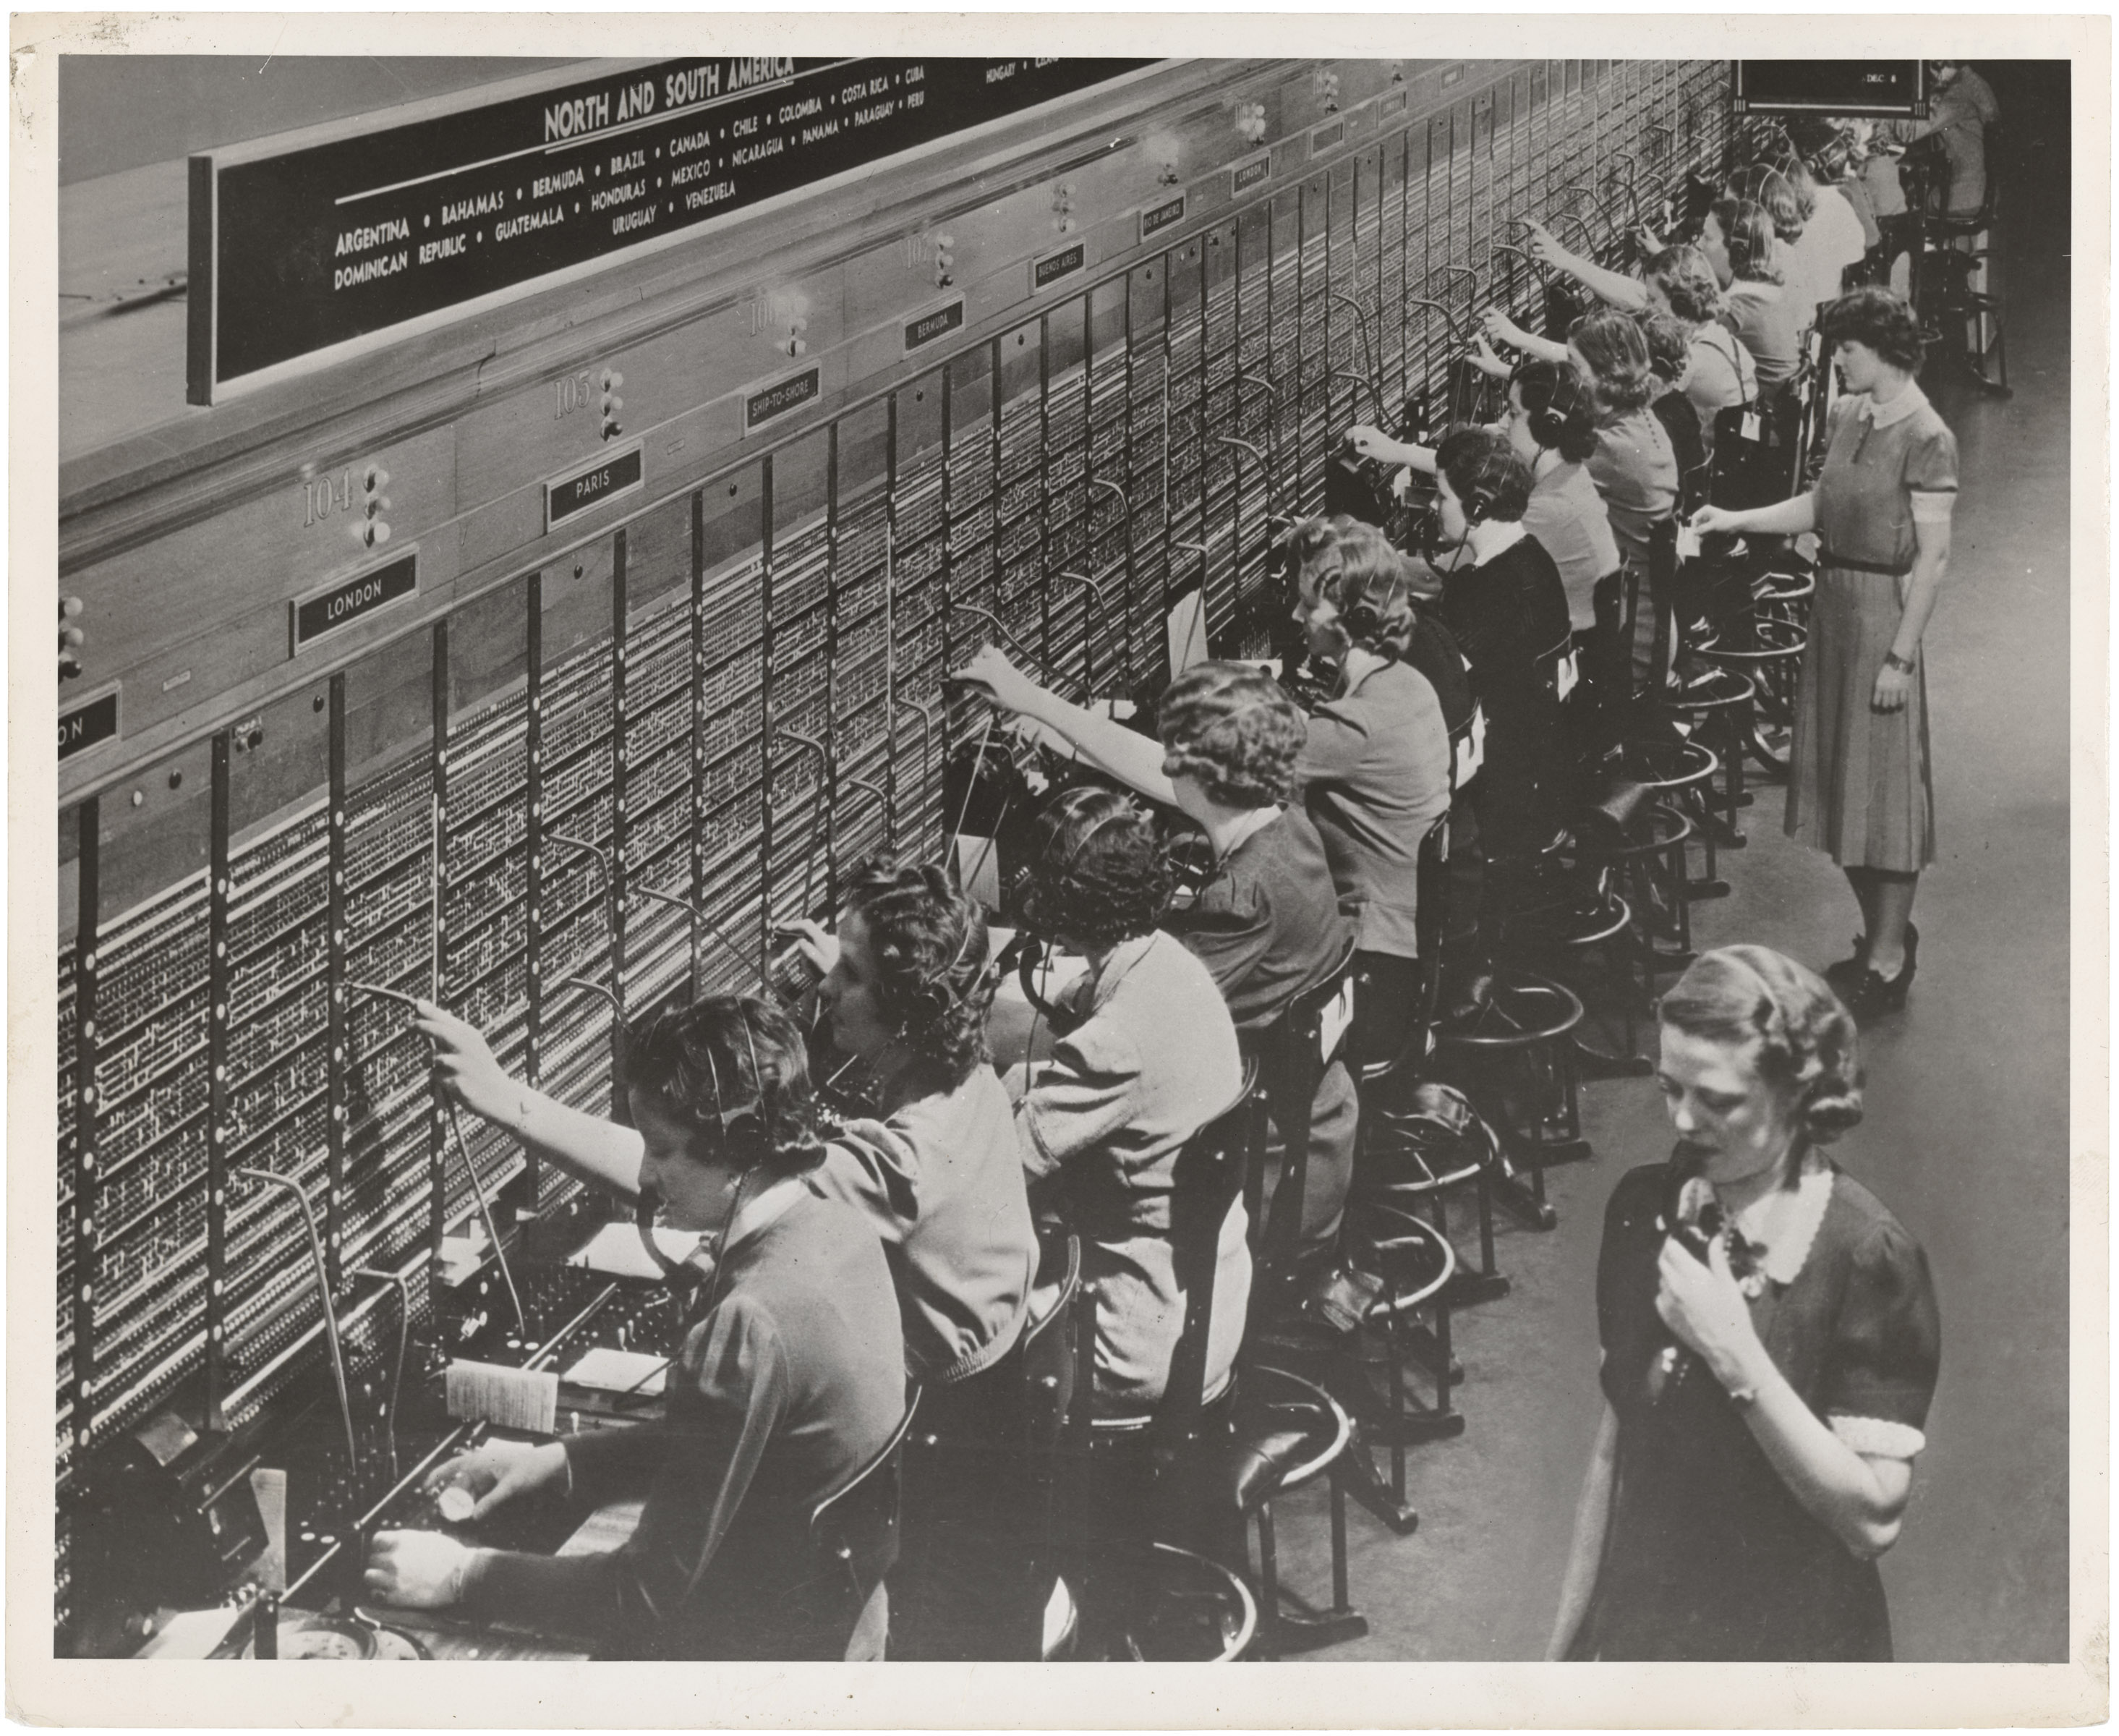 Switchboard operators image